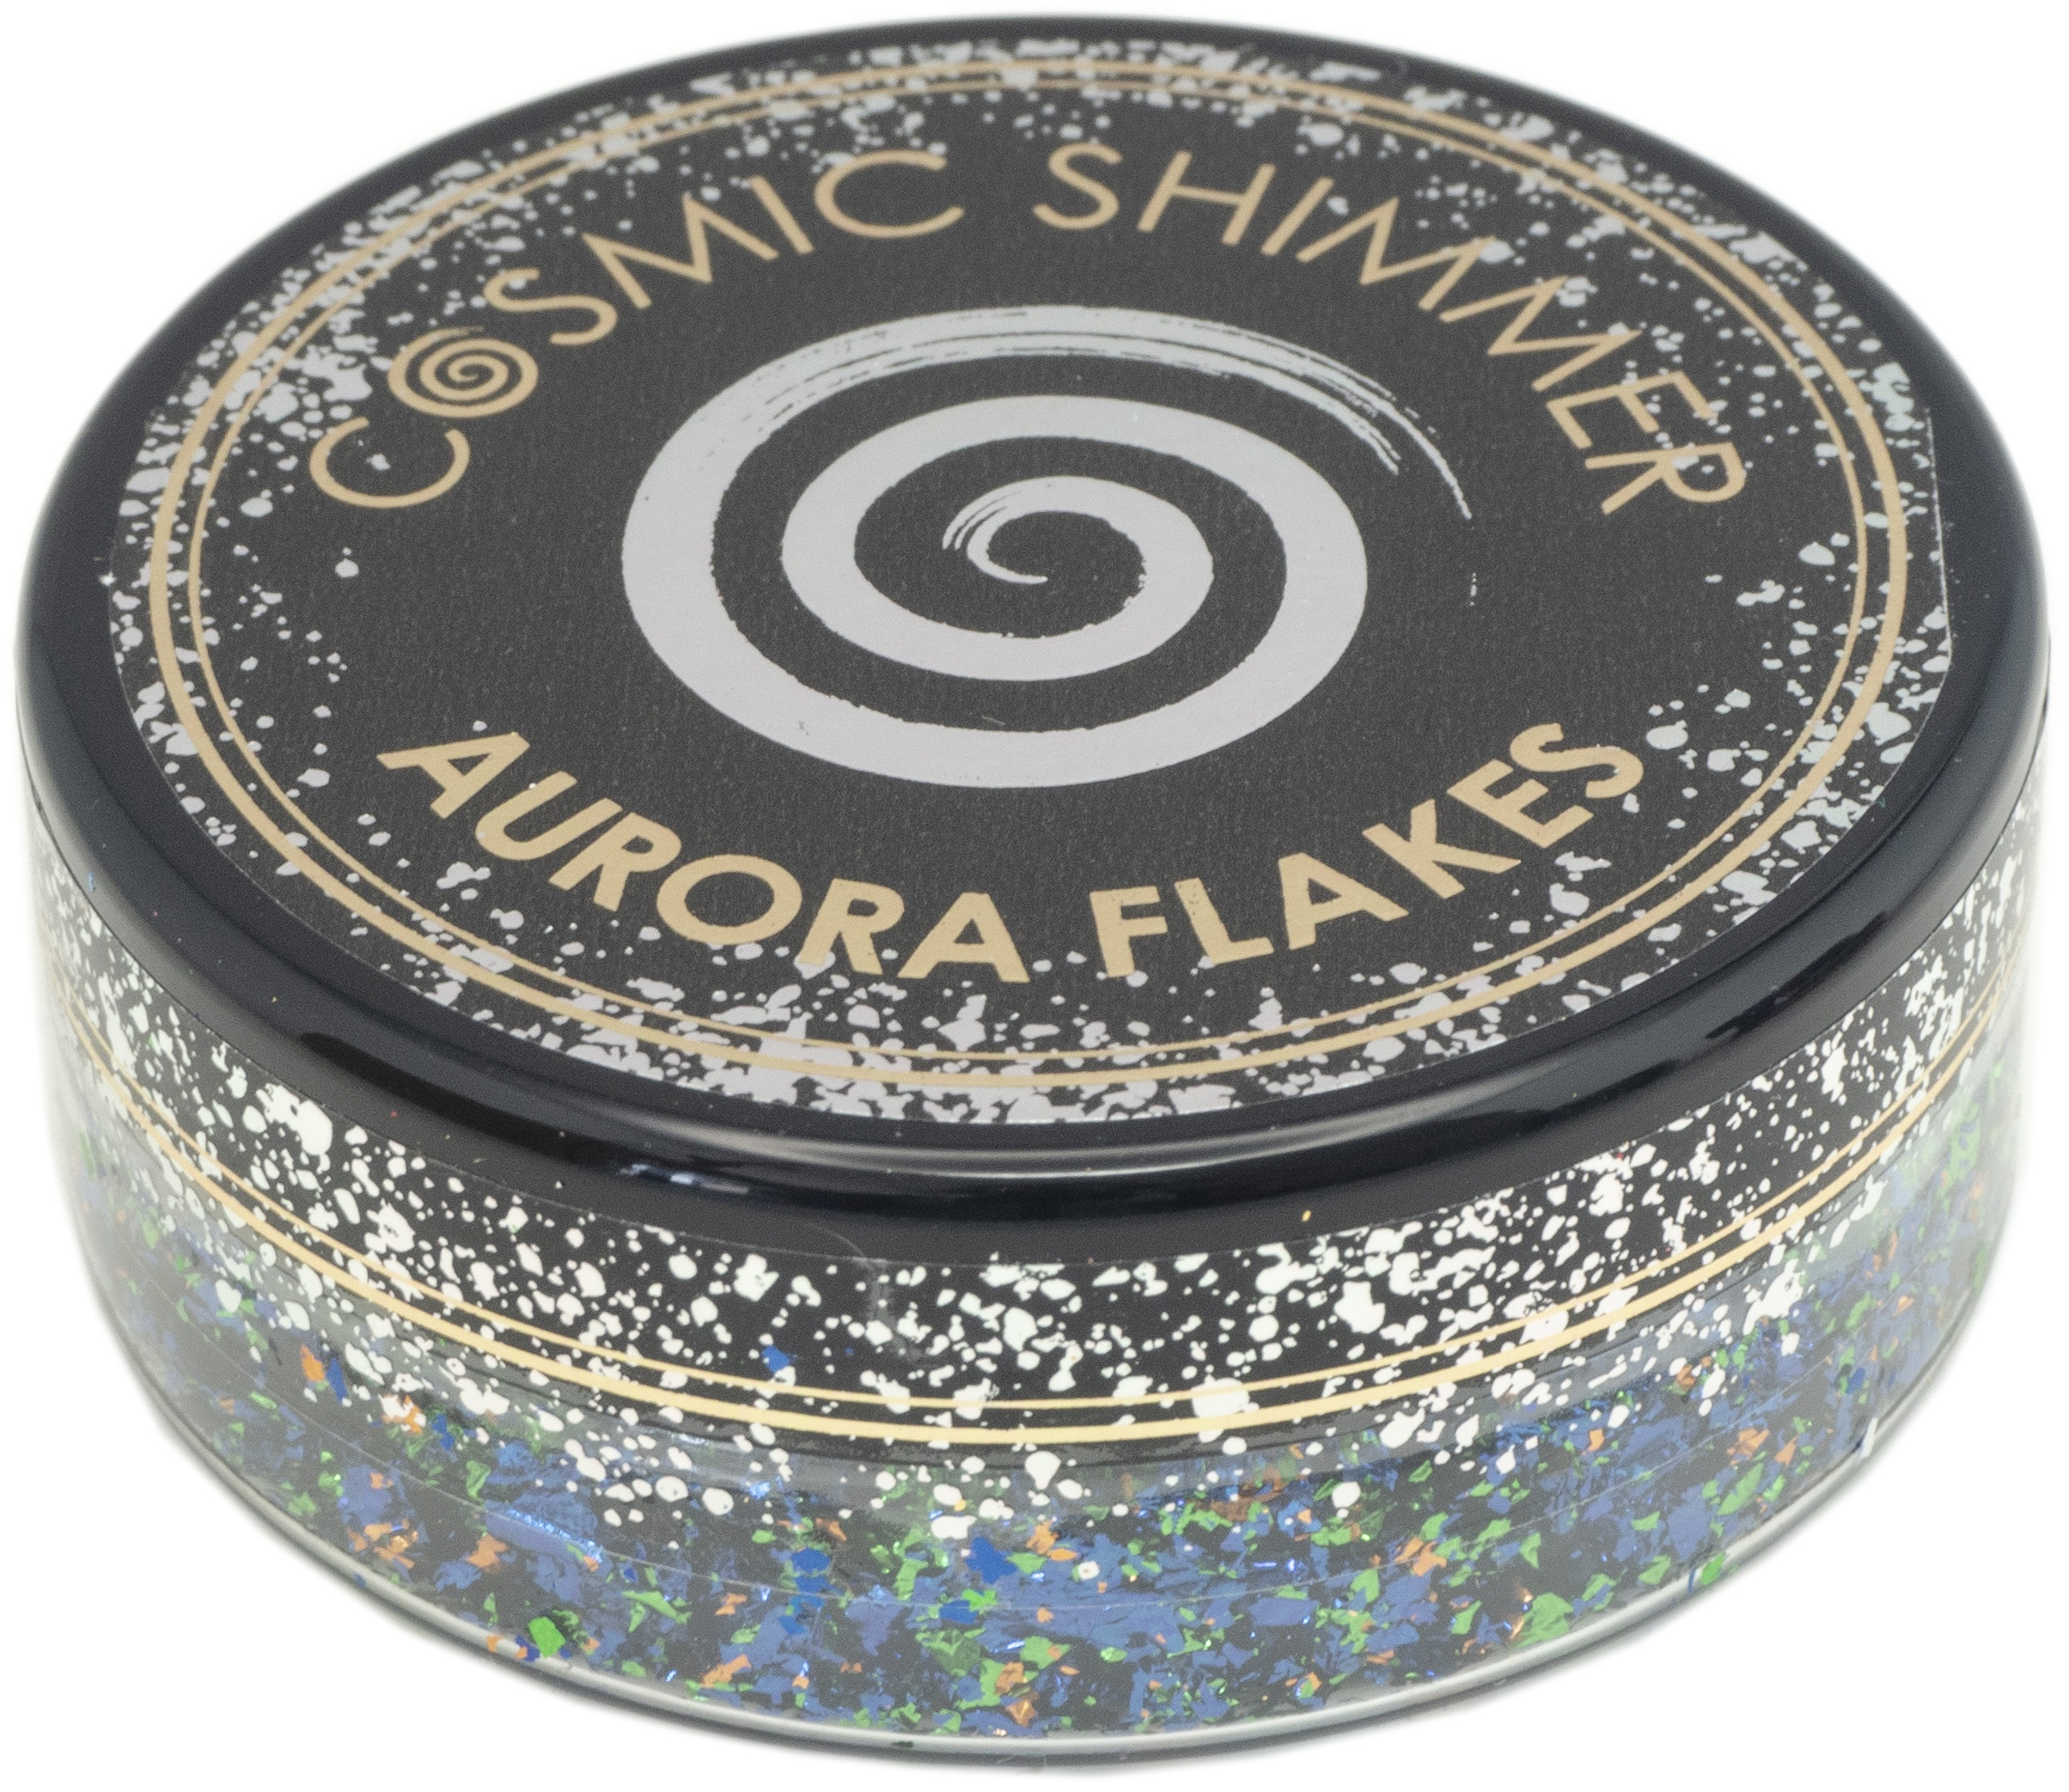 Creative Expressions Cosmic Shimmer Aurora Flakes 50ml-Enchanted Forest